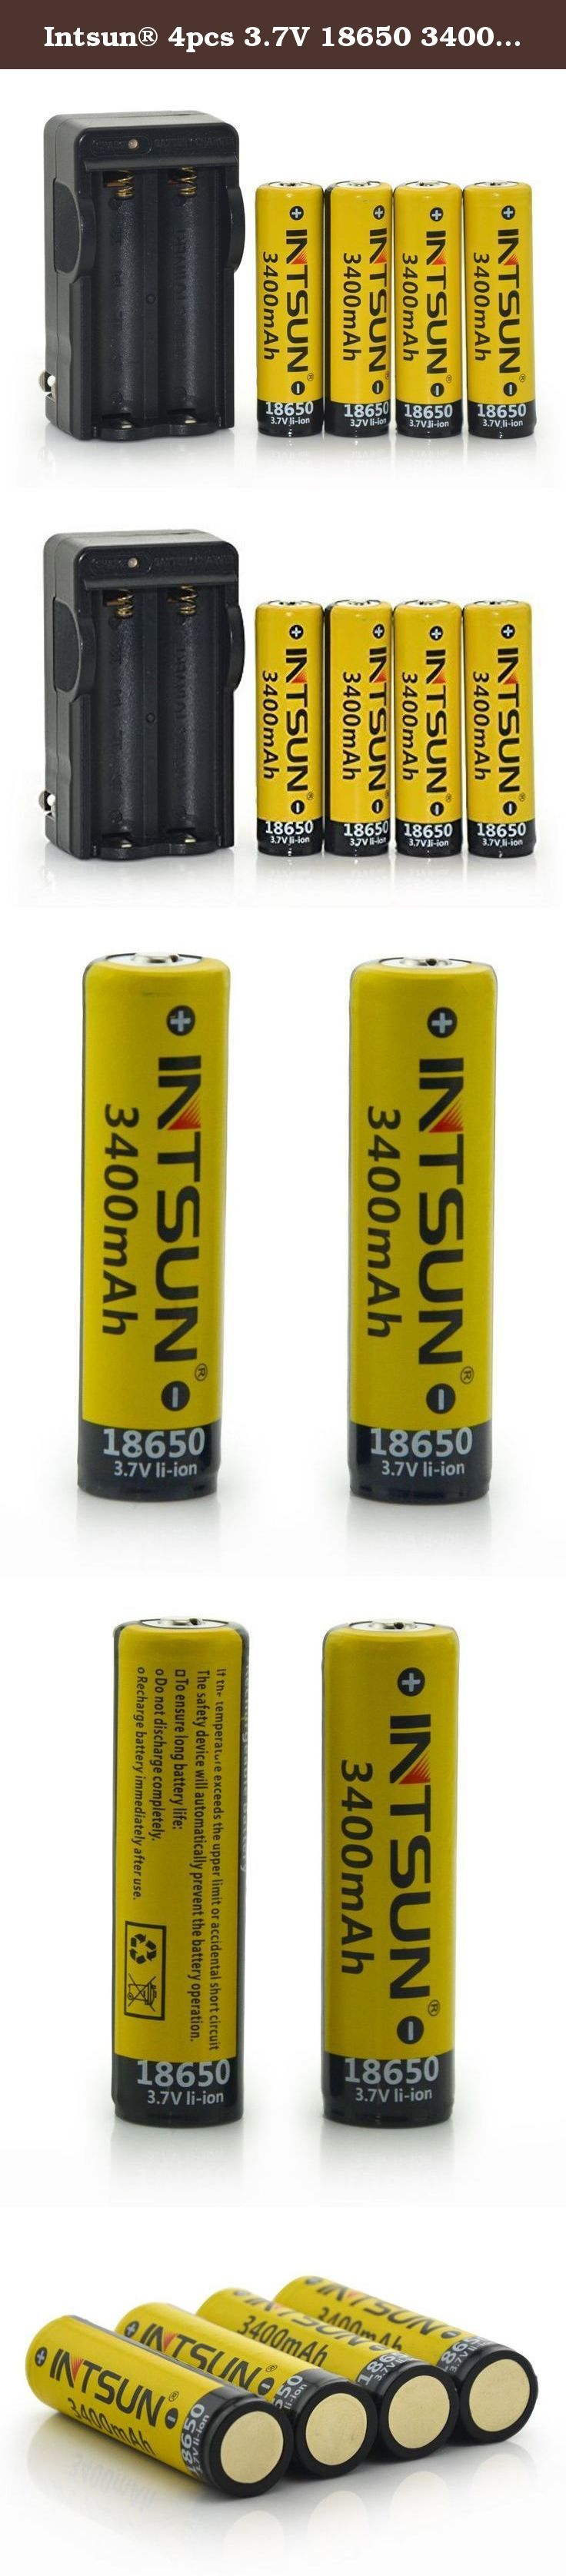 Intsun® 4pcs 3.7V 18650 3400mah Rechargeable Li-ion Battery with PCB and 18650 battery Charger for LED Flashlight, Headlamps, search light lamp, etc. Features: * High quality and durable. * No memory effect, Environmentally friendly. * Provides excellent continuous power sources to your device. * This battery has an extra long life for all your battery powered devices. * With overcharge / discharge protection function that you can use it without worry. * Can be used in laser pointer, Led...